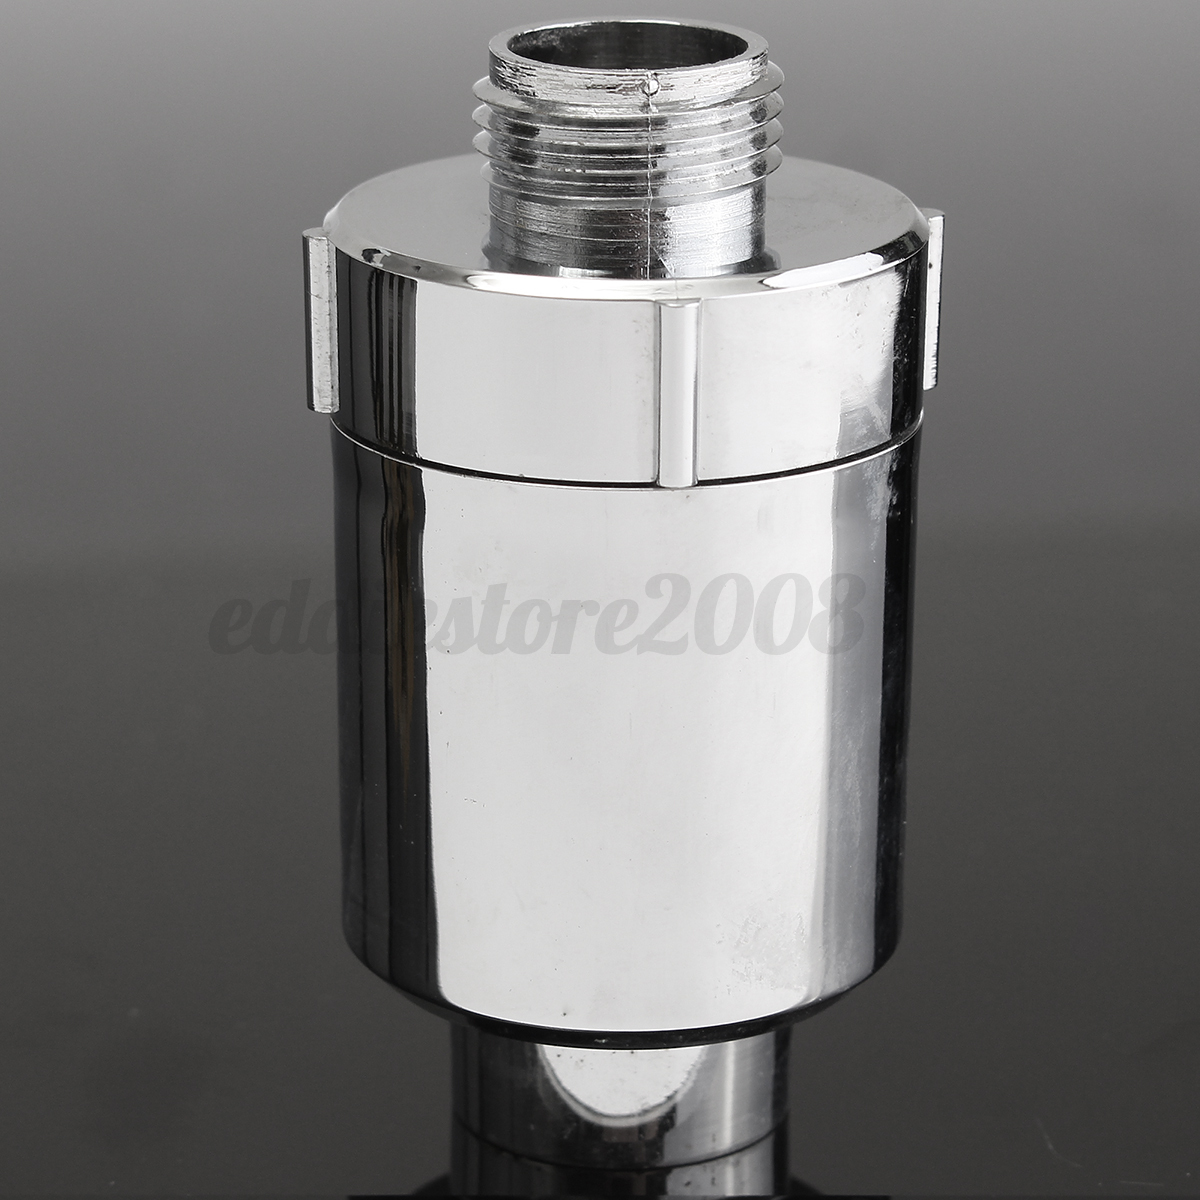 Shower Head Faucet Tap Filter Removal Water Clean Carbon Purifier Chrome Bath Ebay